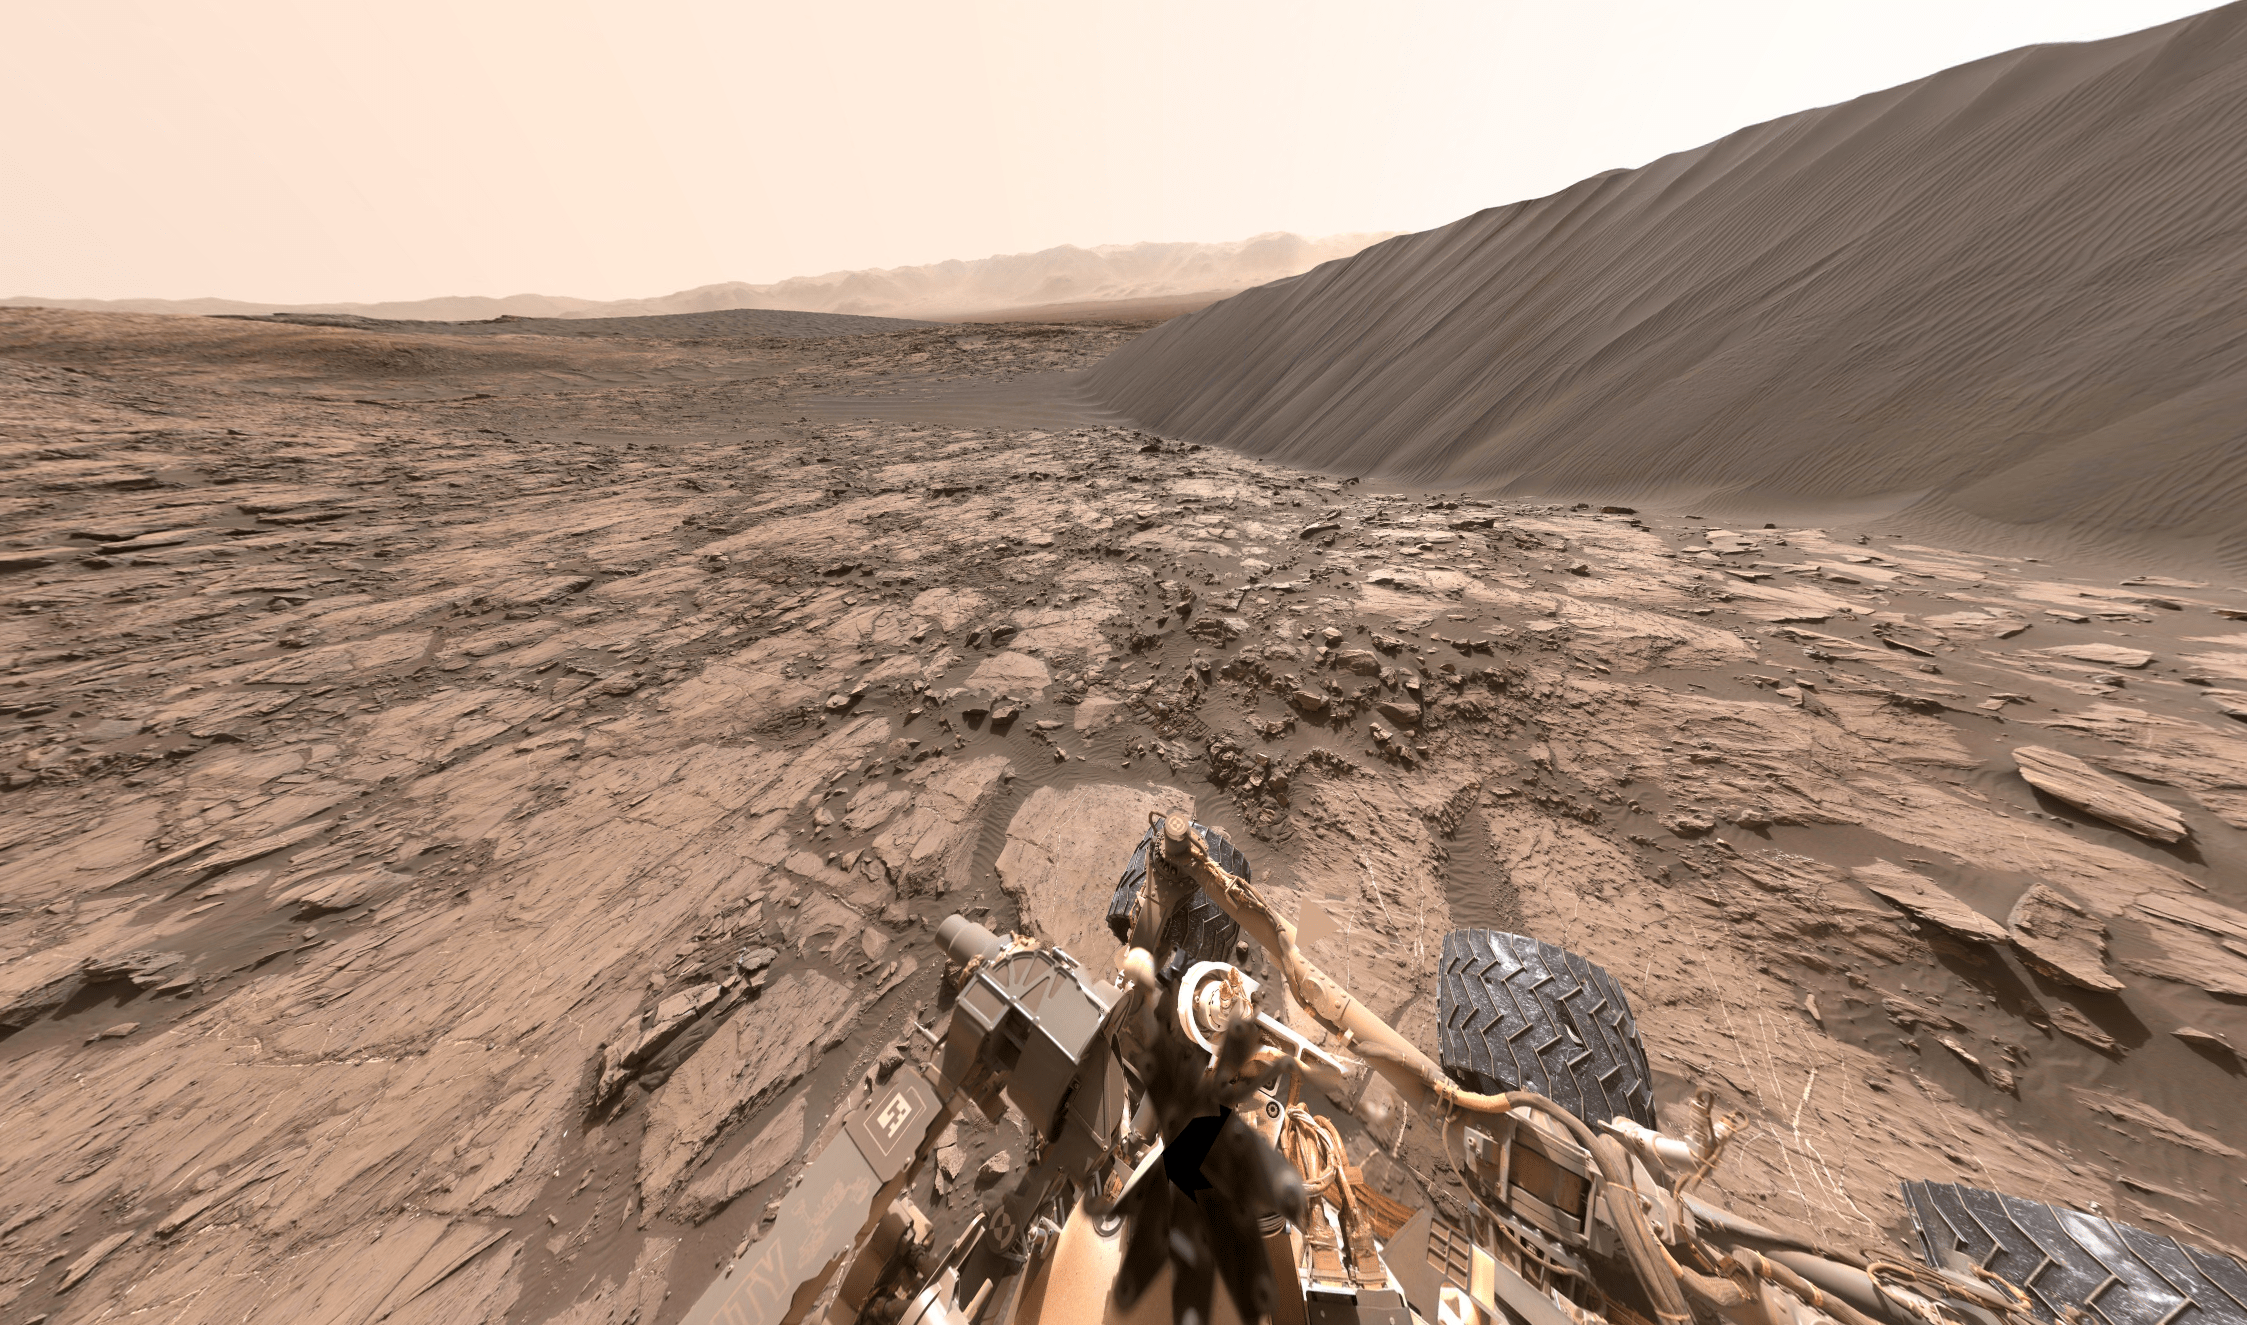 Explore Mars with 360 degree image shot by NASA Curiosity Rover